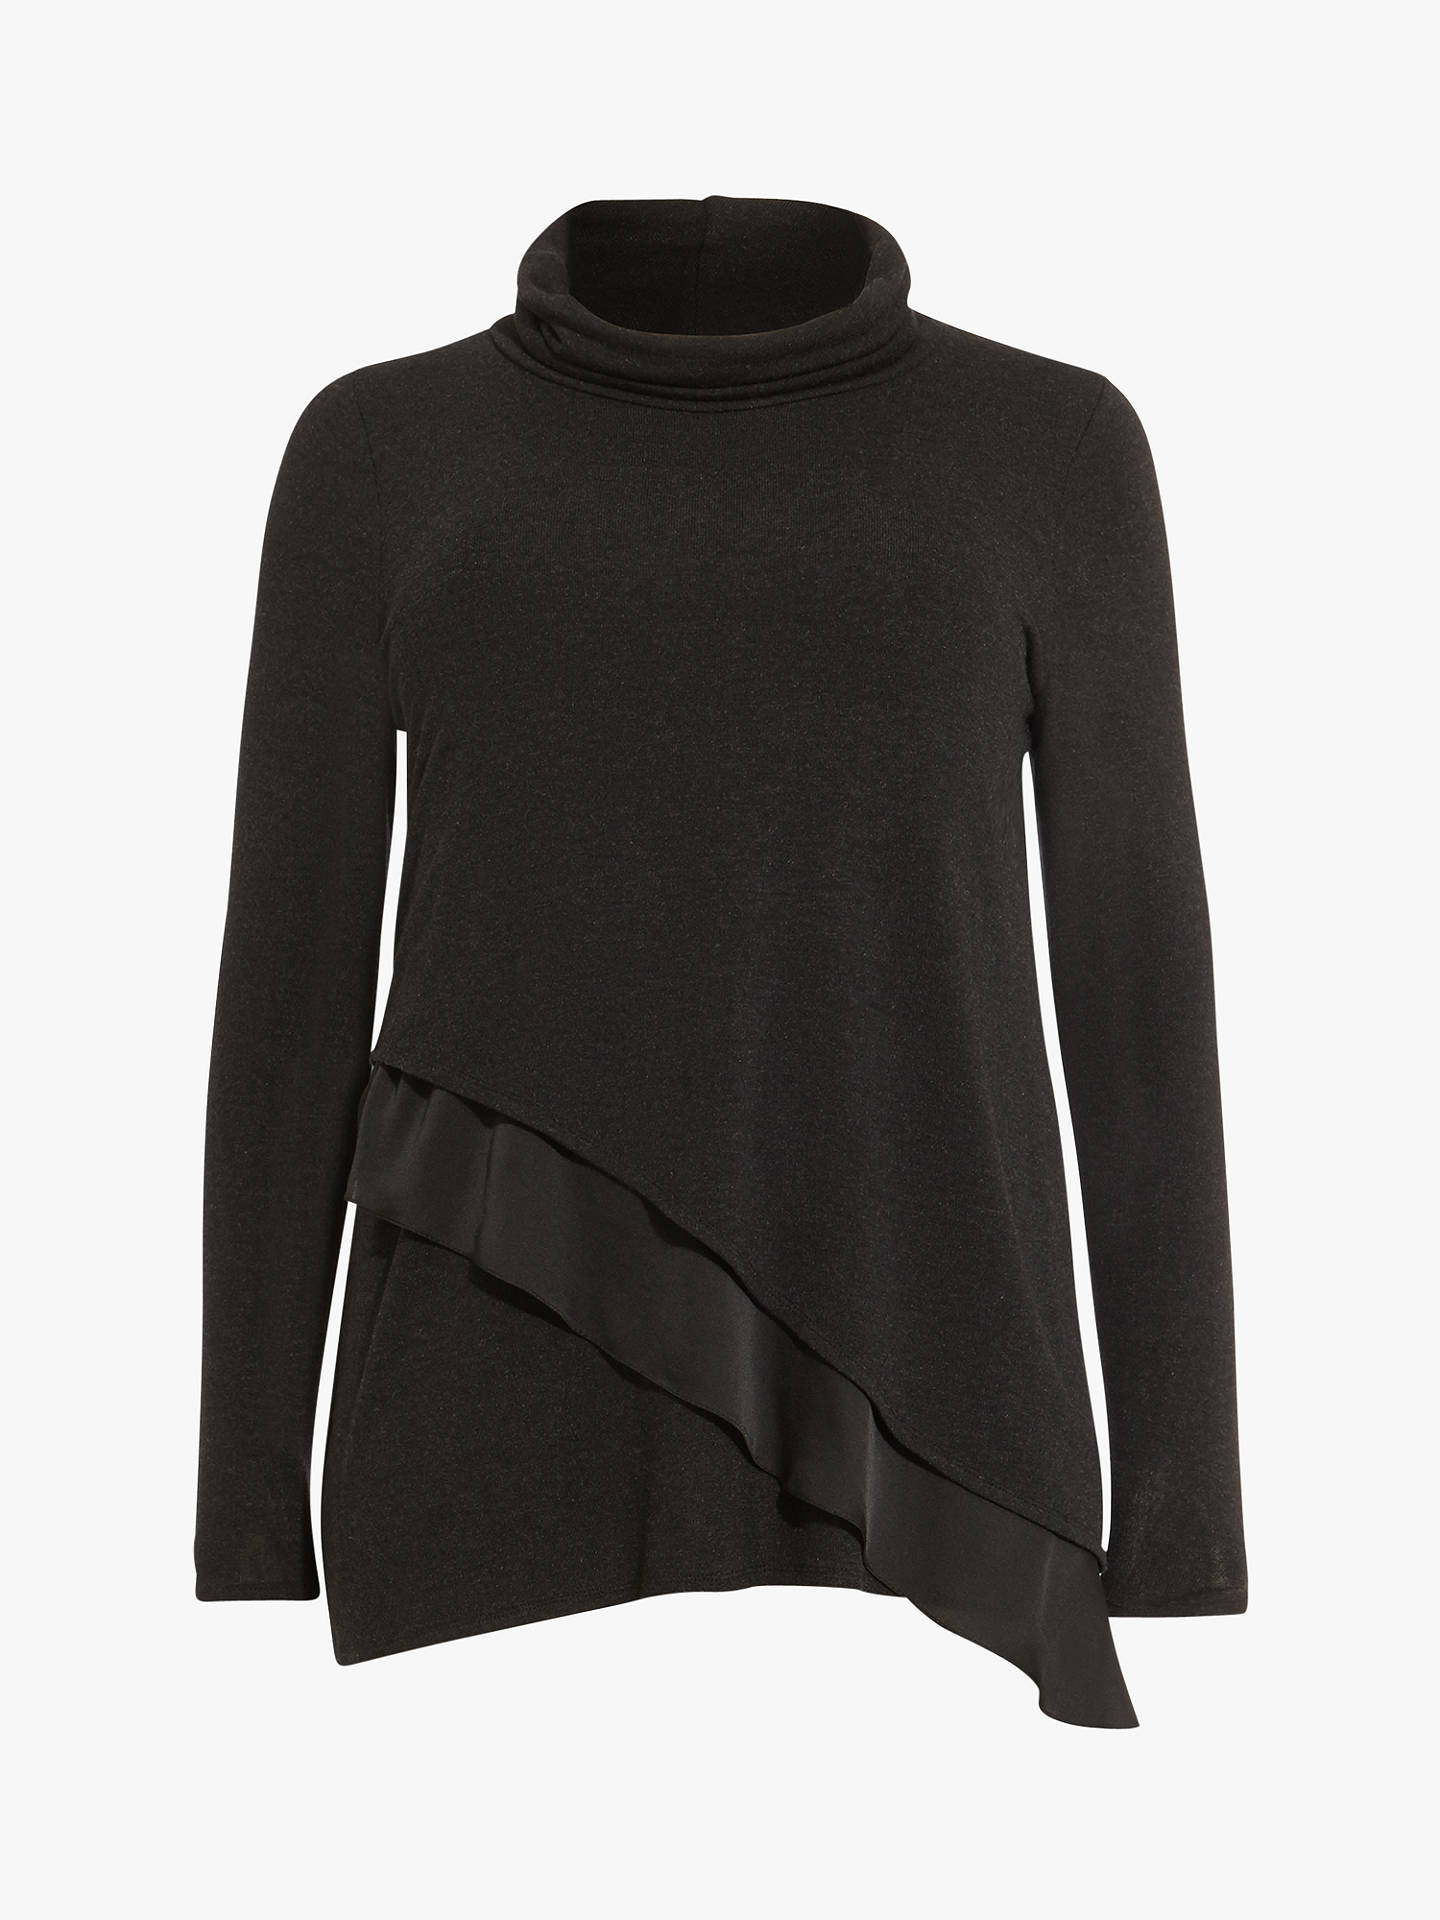 BuyStudio 8 Caitie Roll Neck Top, Charcoal, 18 Online at johnlewis.com